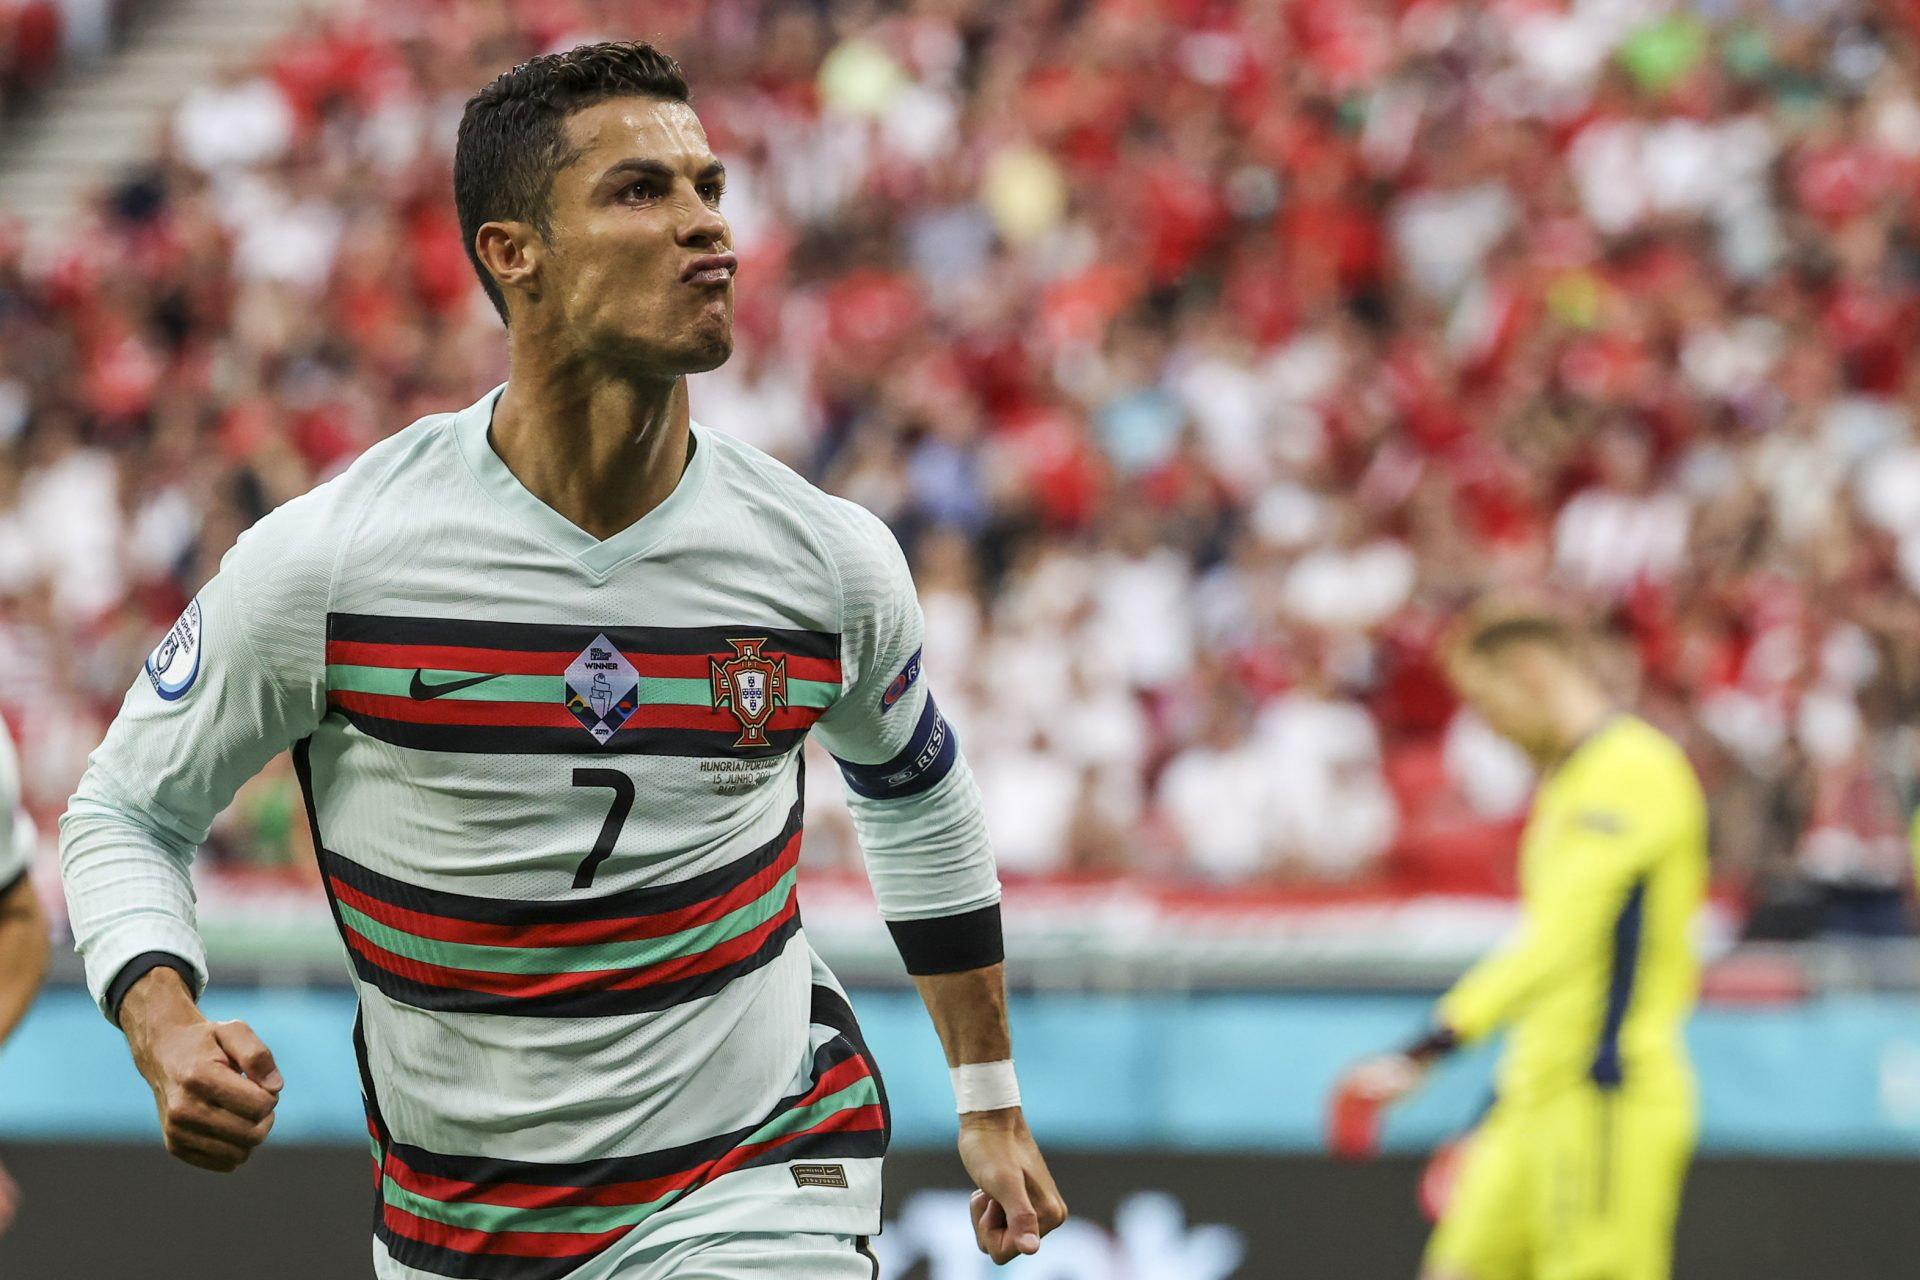 We'll miss you at Euro 2020, Ronaldo! The best memes about Europe's best player